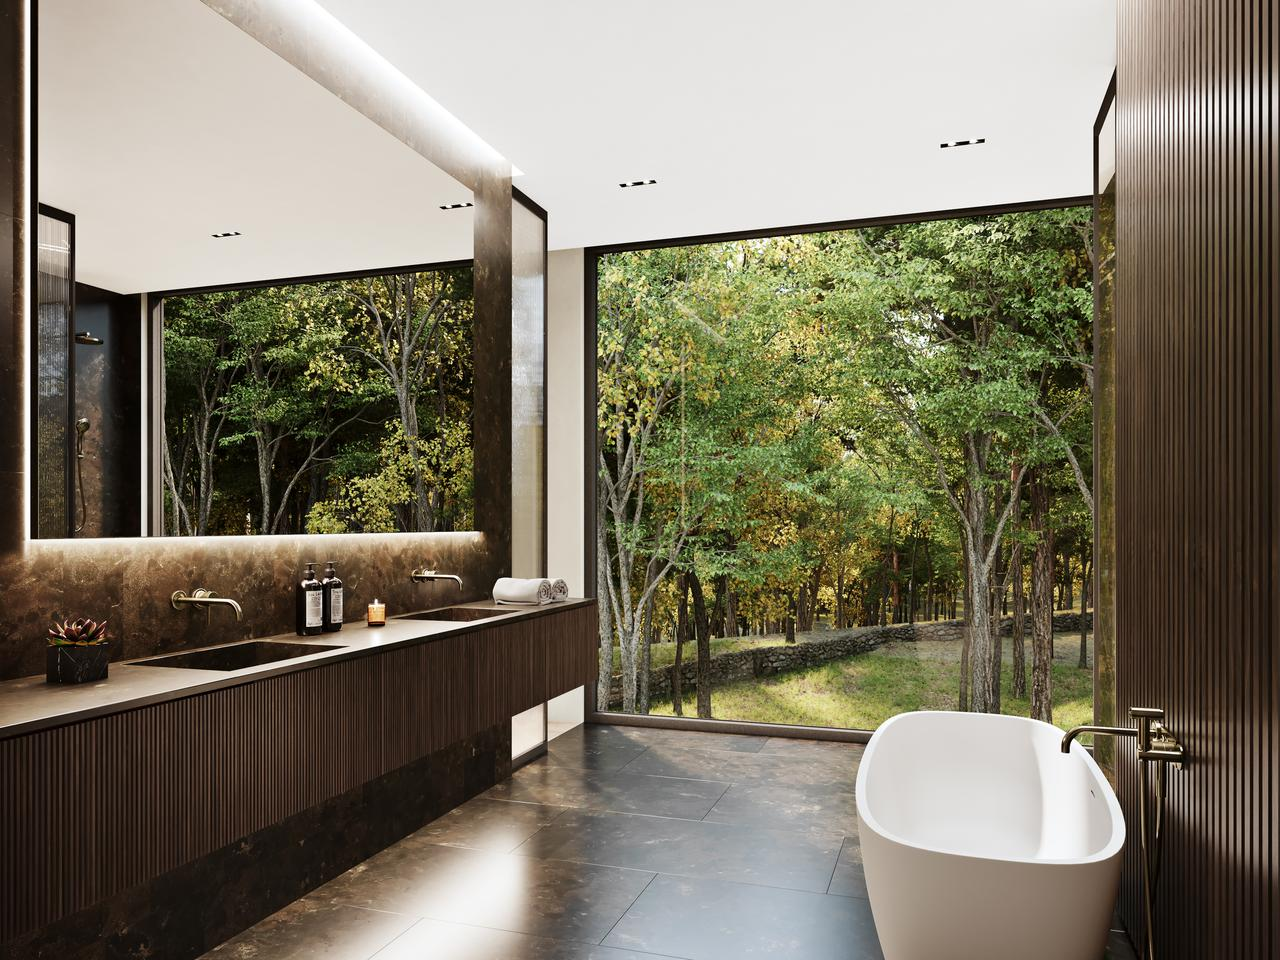 Sylvan Rock's master bathroom boasts twin sinks and superb views of the landscape outside